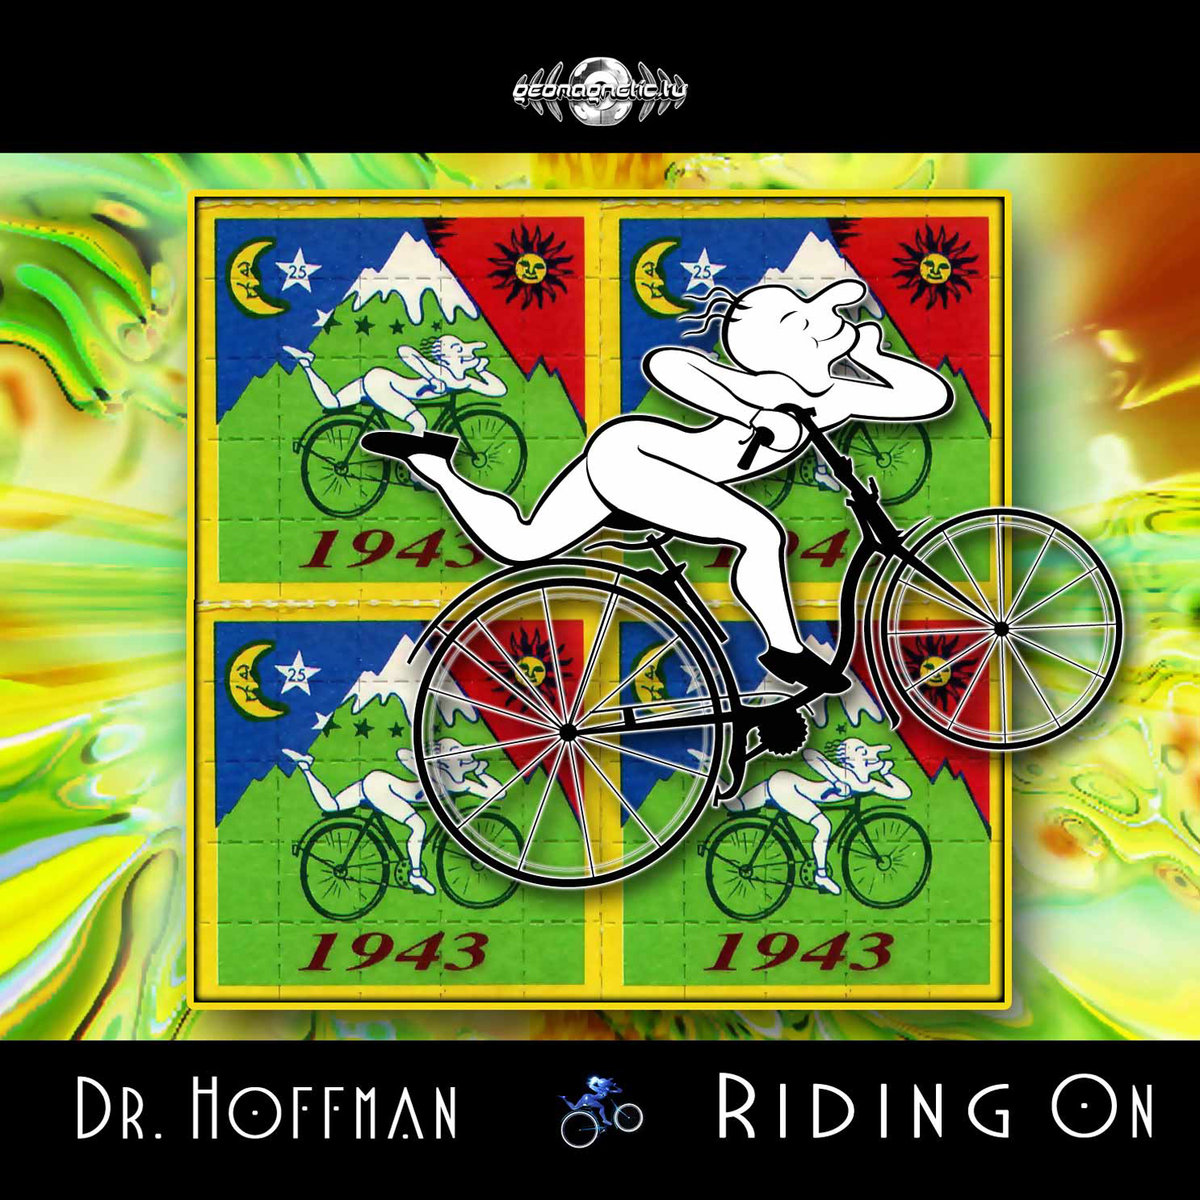 Dr. Hoffman - Riding On